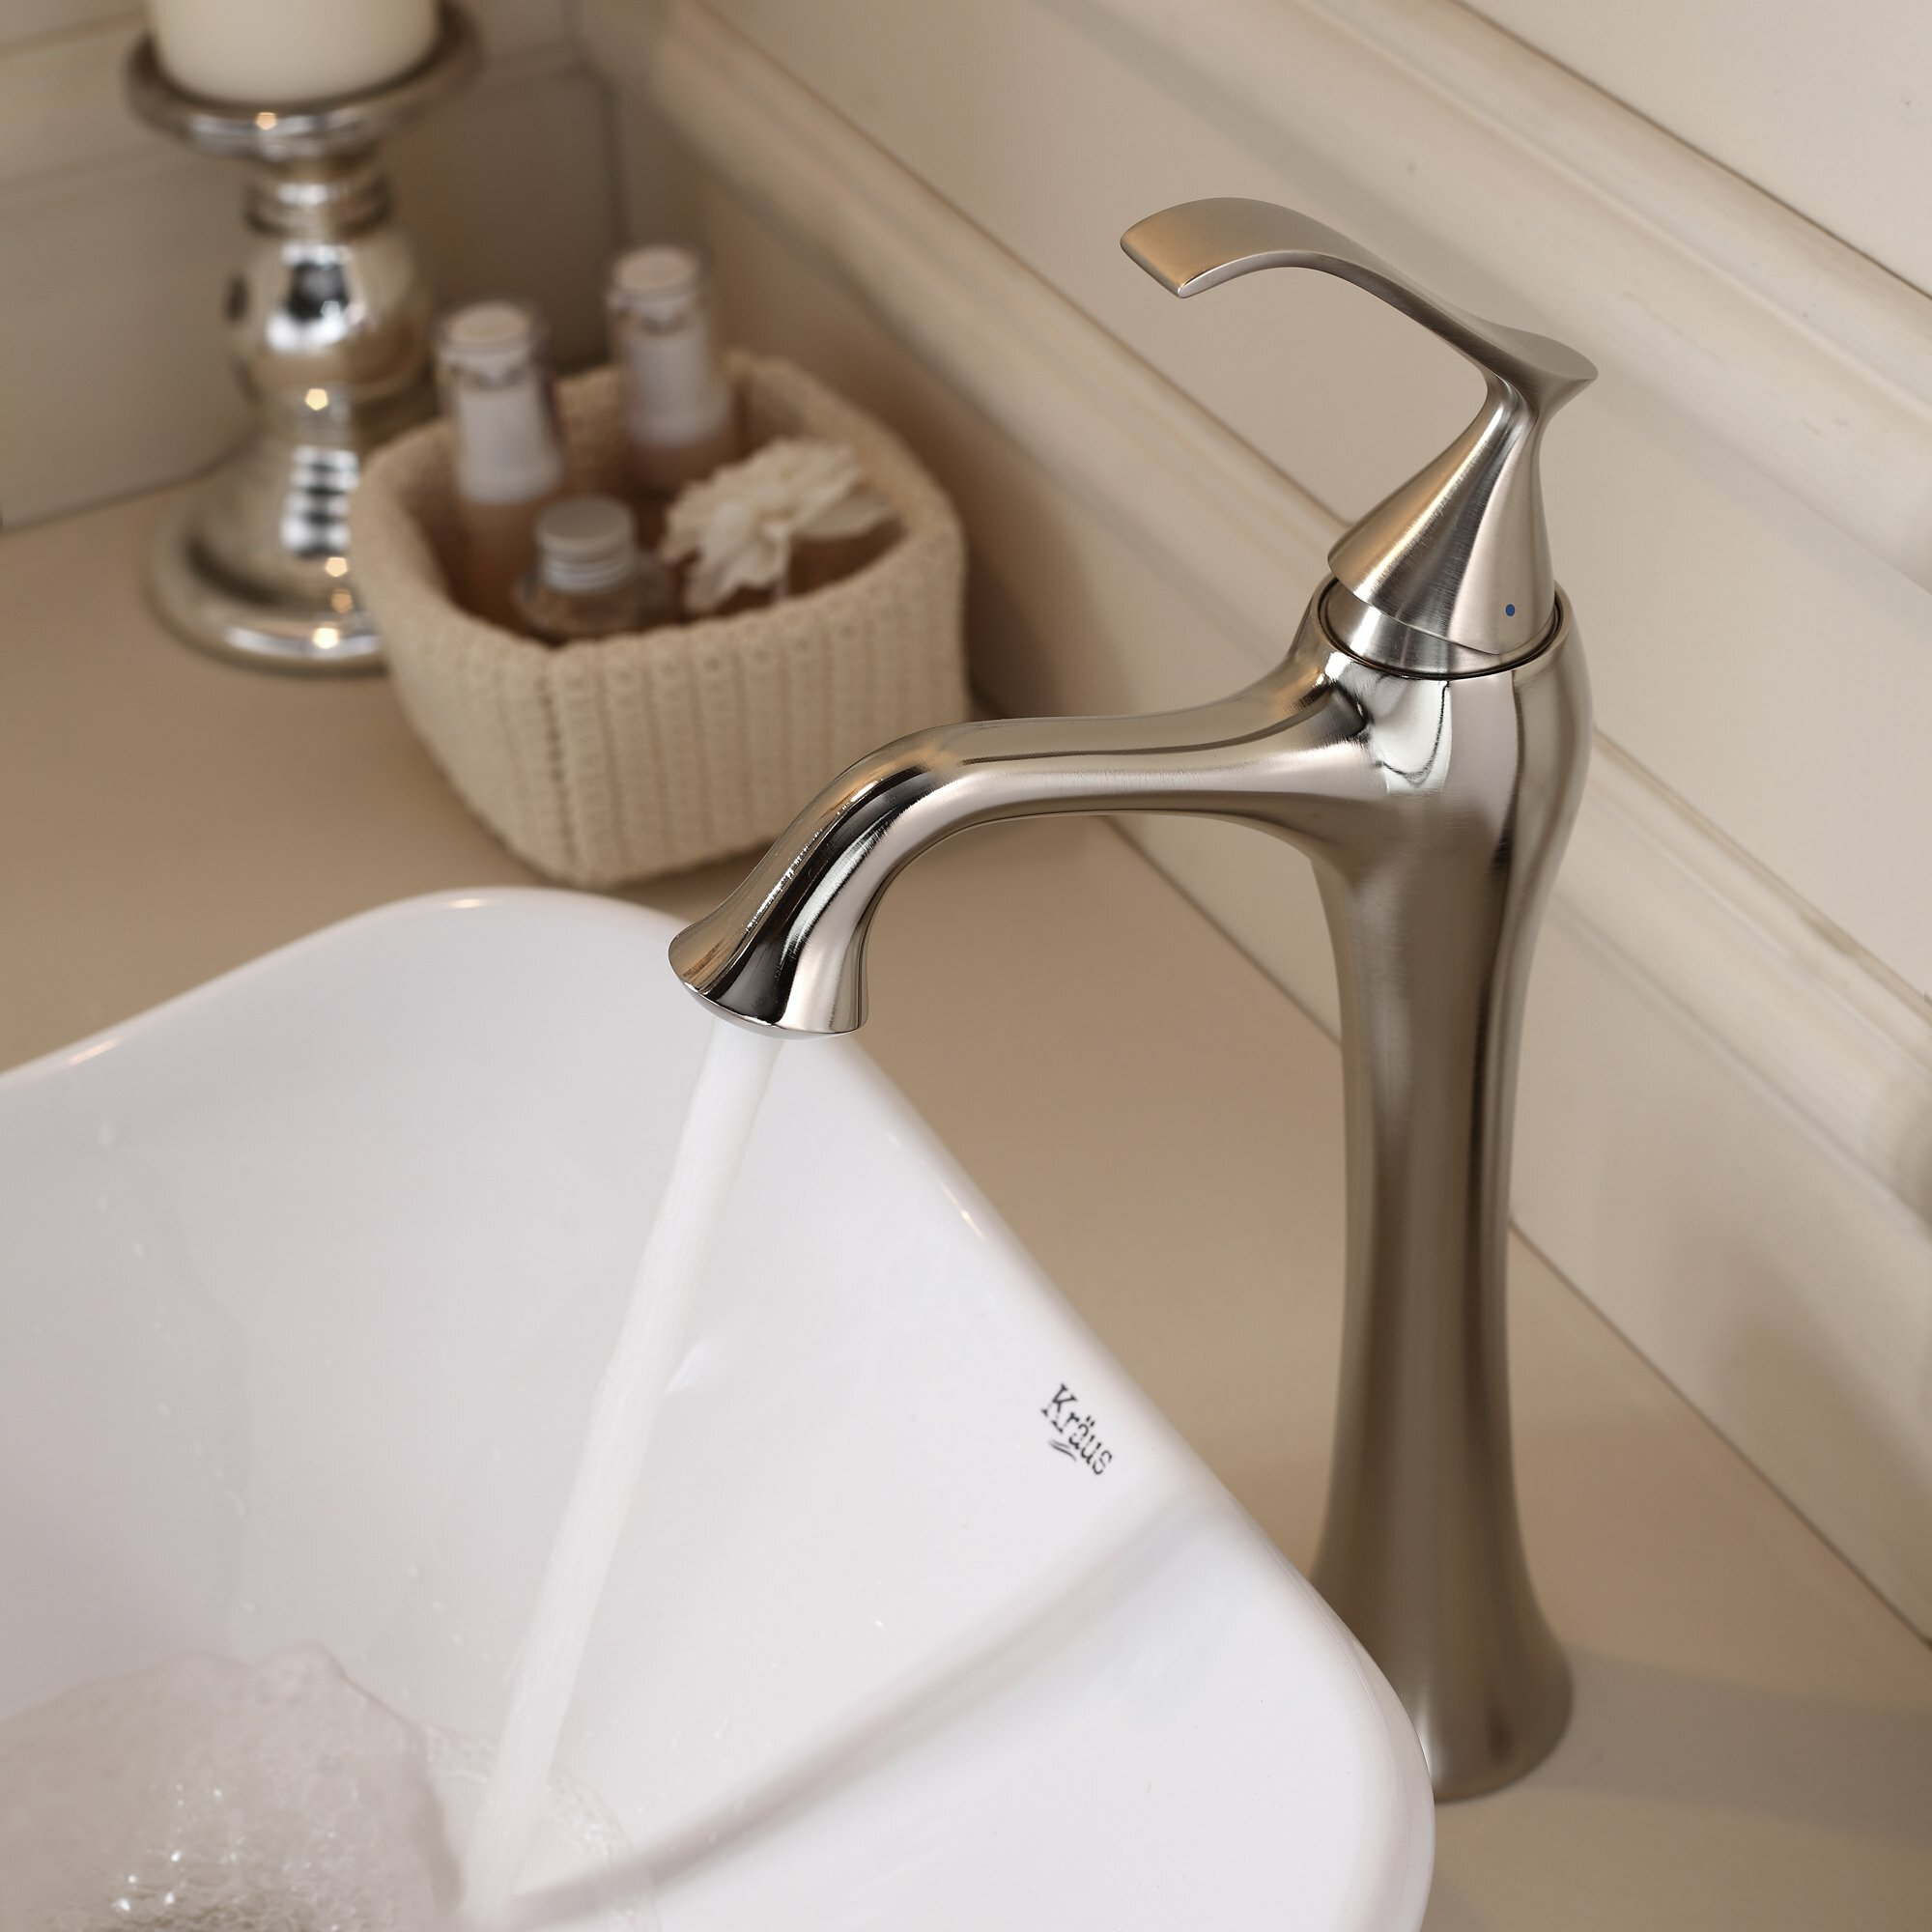 Bathroom Combos Bathroom Sink With Single Handle Single Hole Ventus Faucet Wayfair